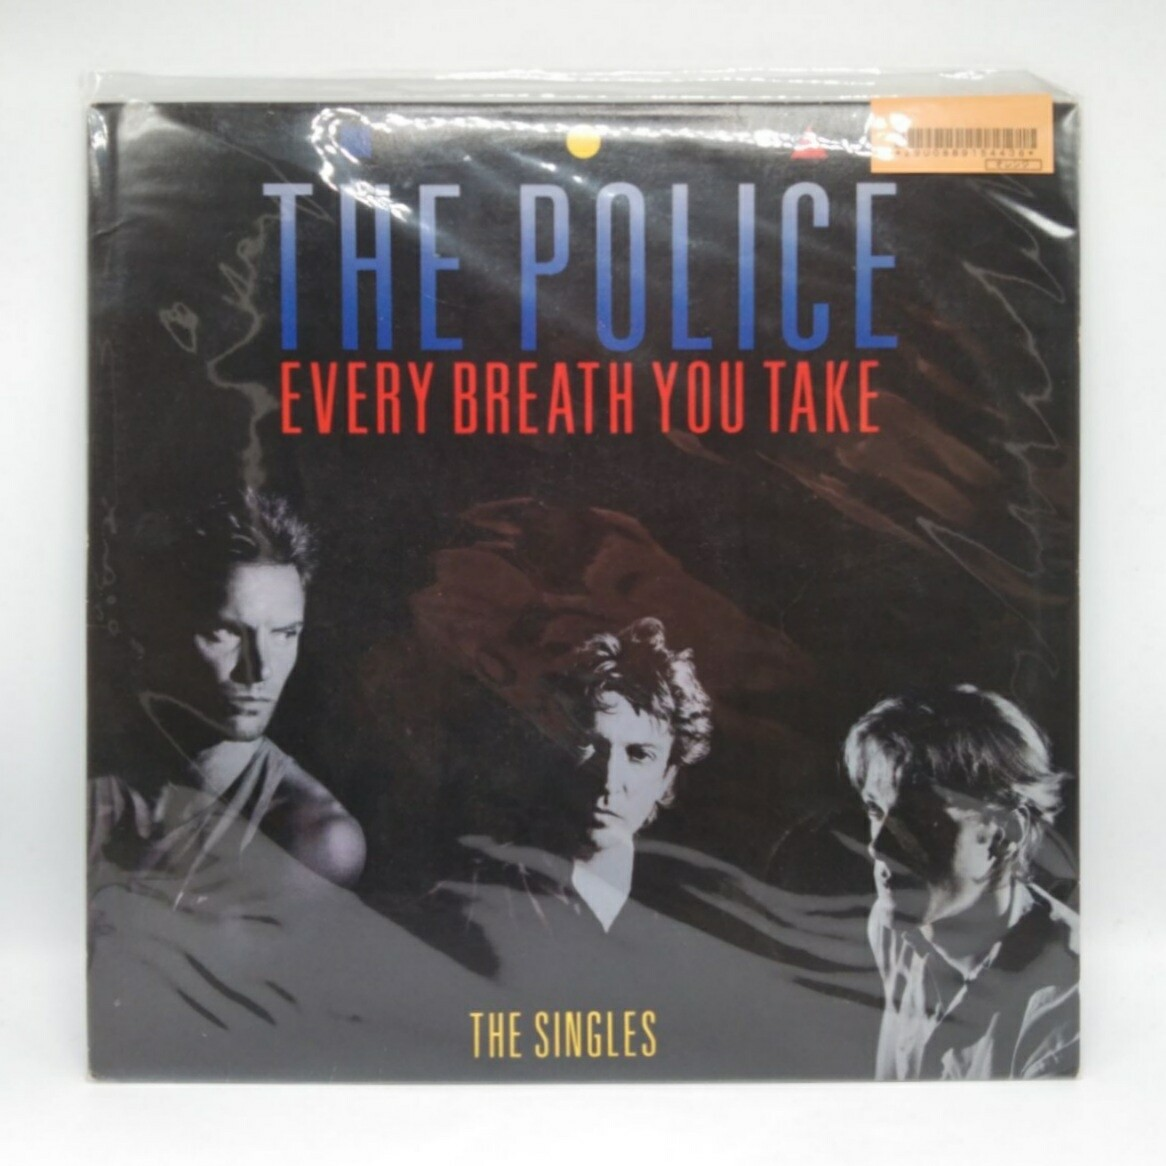 [USED] THE POLICE -EVERY BREATH YOU TAKE- LP